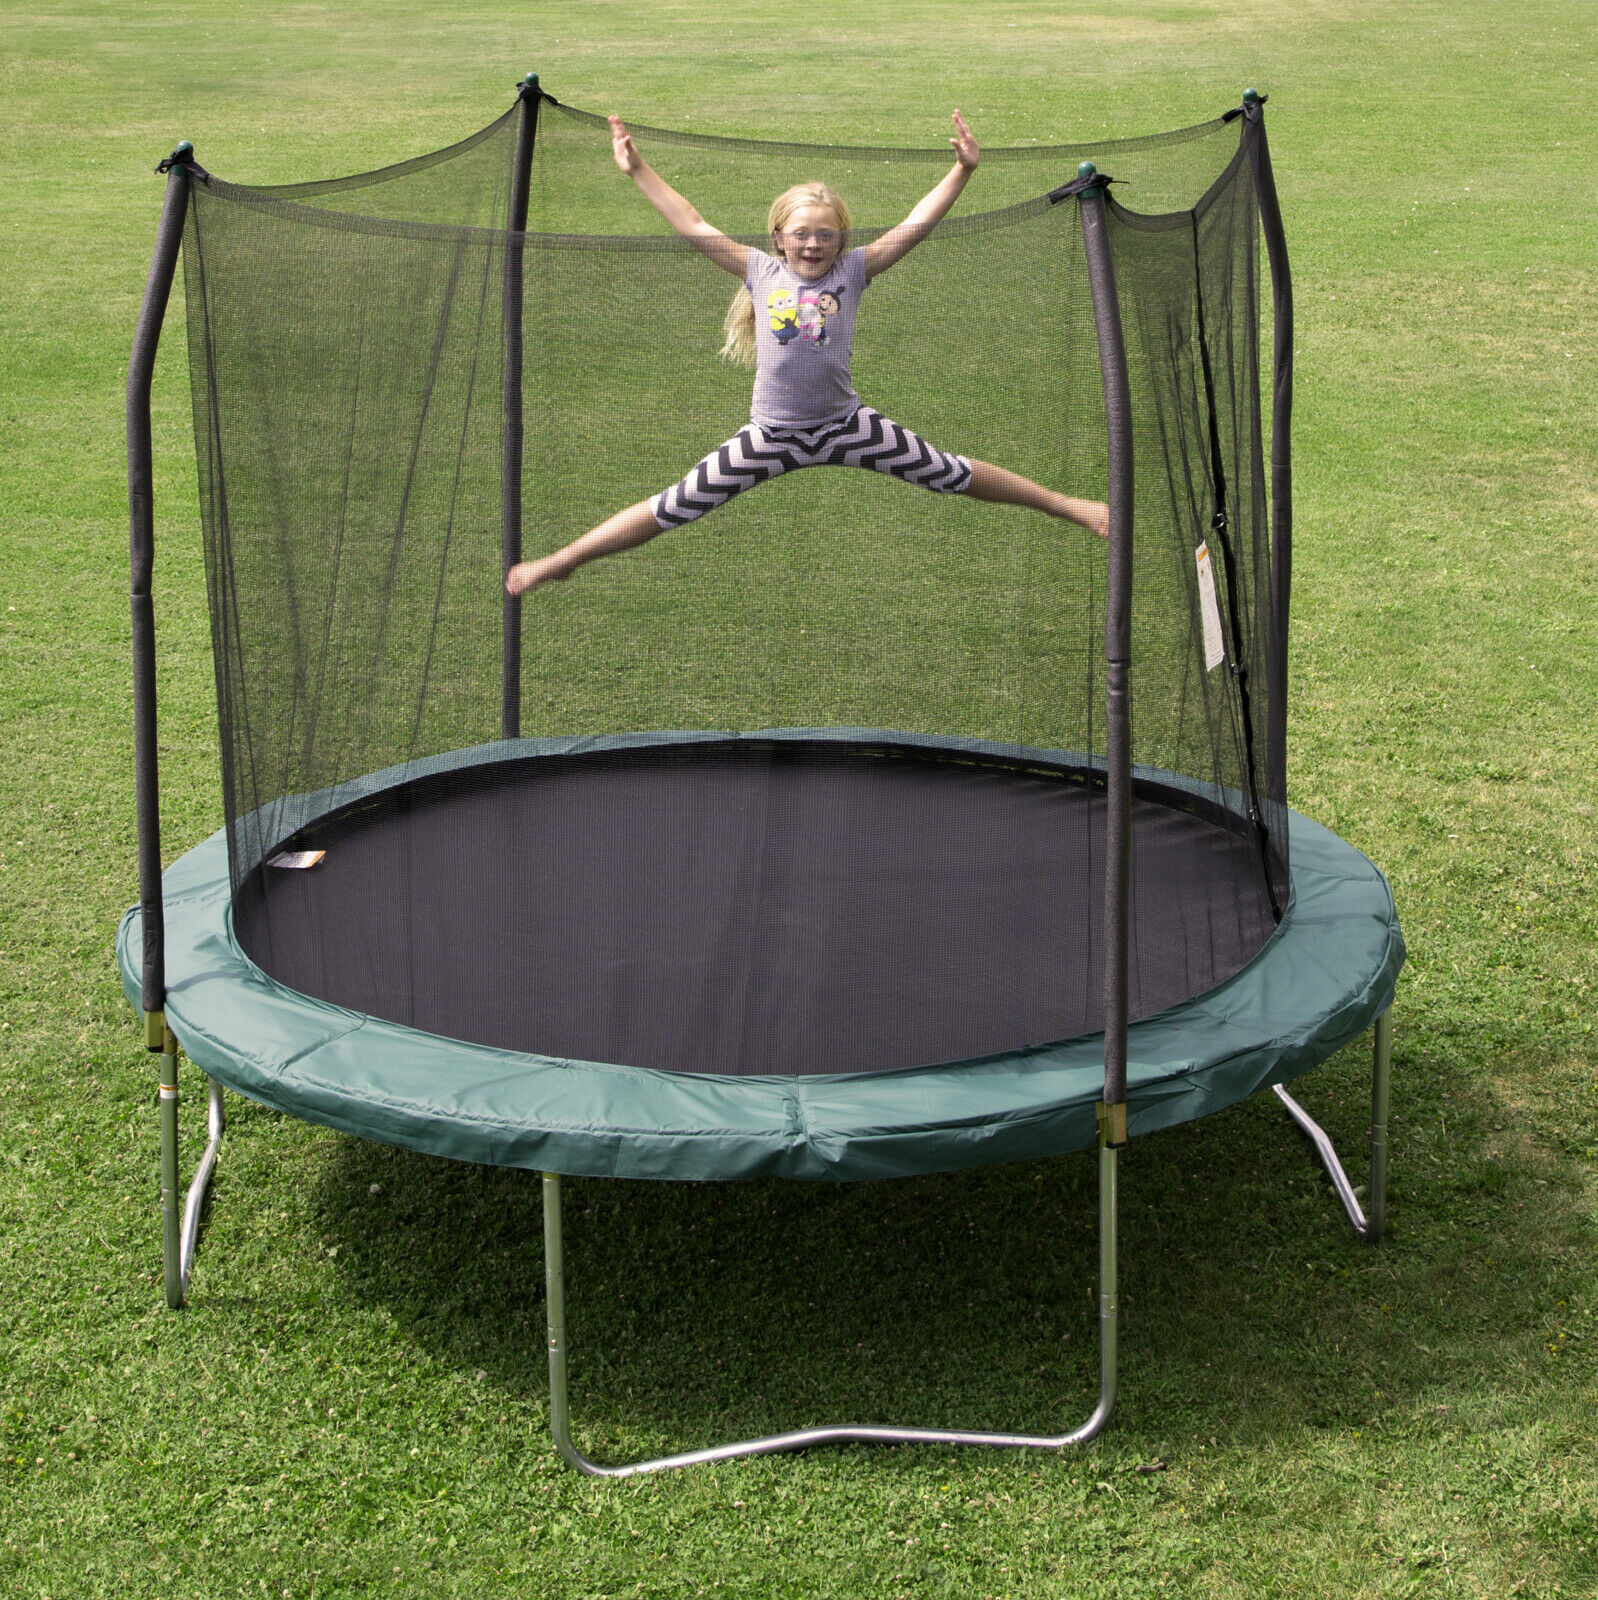 Trampoline Parts Center Coupon Code: Outdoor Trampoline Bouncer With Enclosure And Wind Stakes